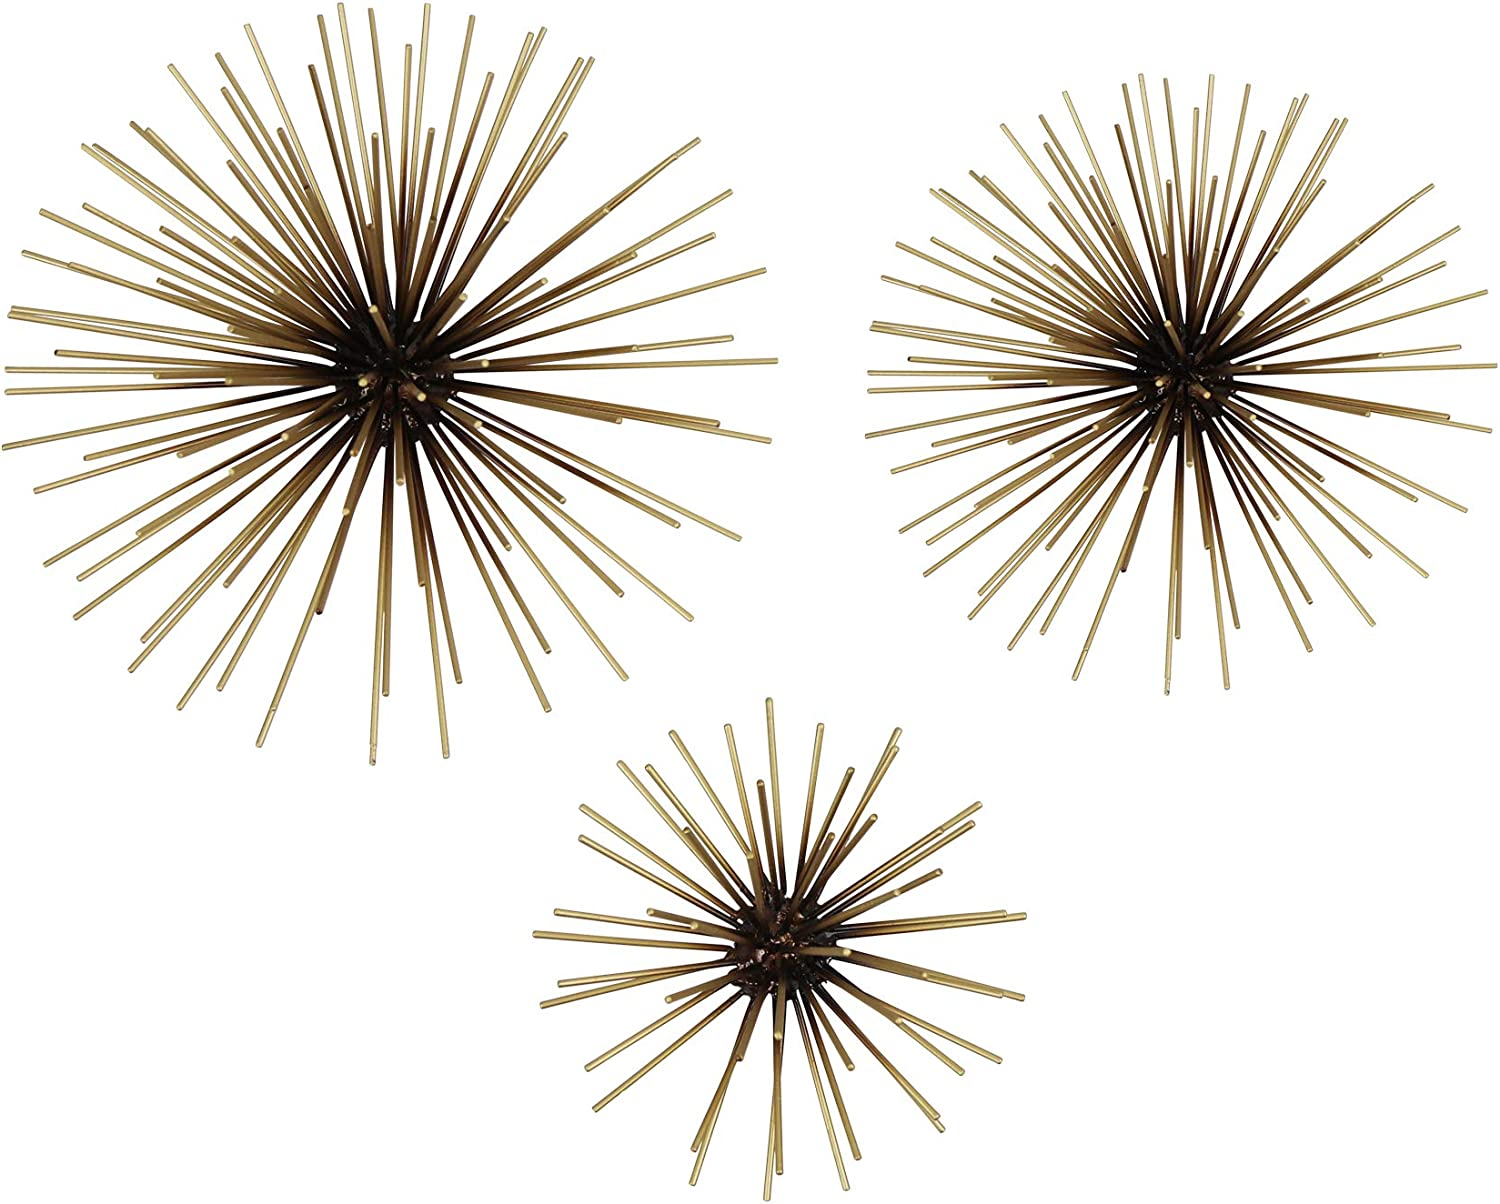 Stratton Home Decor Set of 3 Black Starburst Metal Art Wall Décor, 10 x 3.5 x 10, Antique Gold